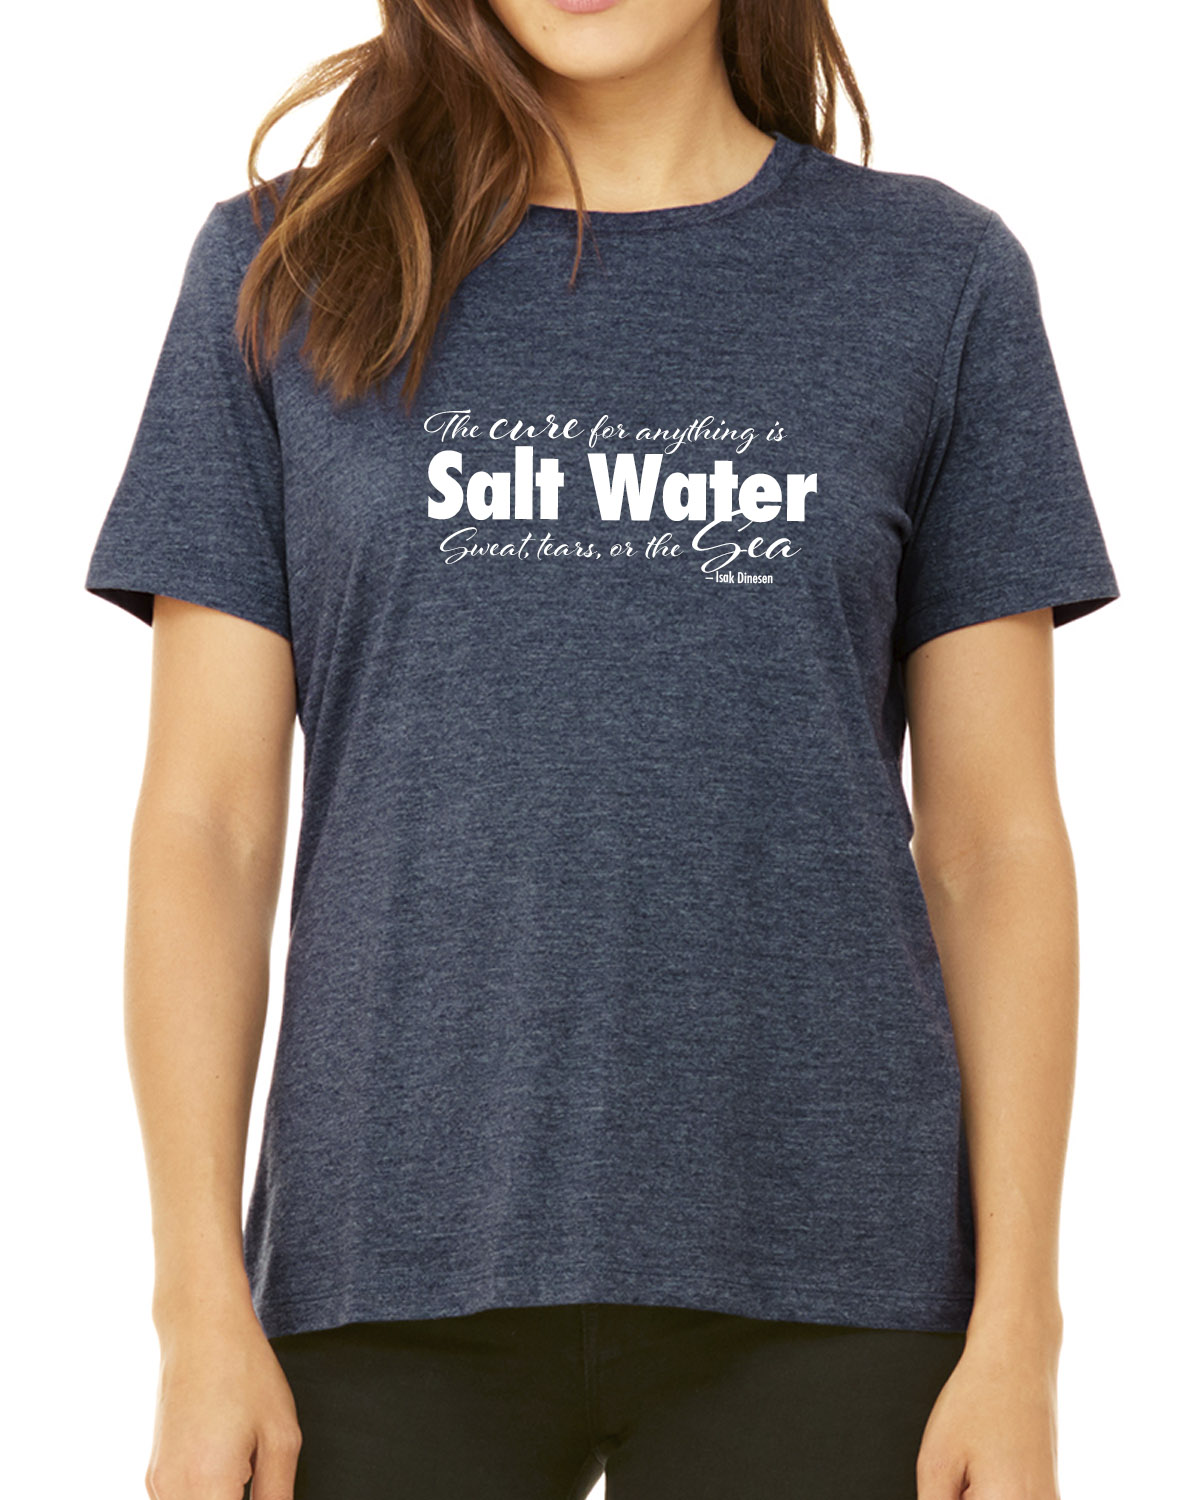 Women's Crew Neck Short Sleeve Salt Water QuoteT-shirt (Heather Navy)